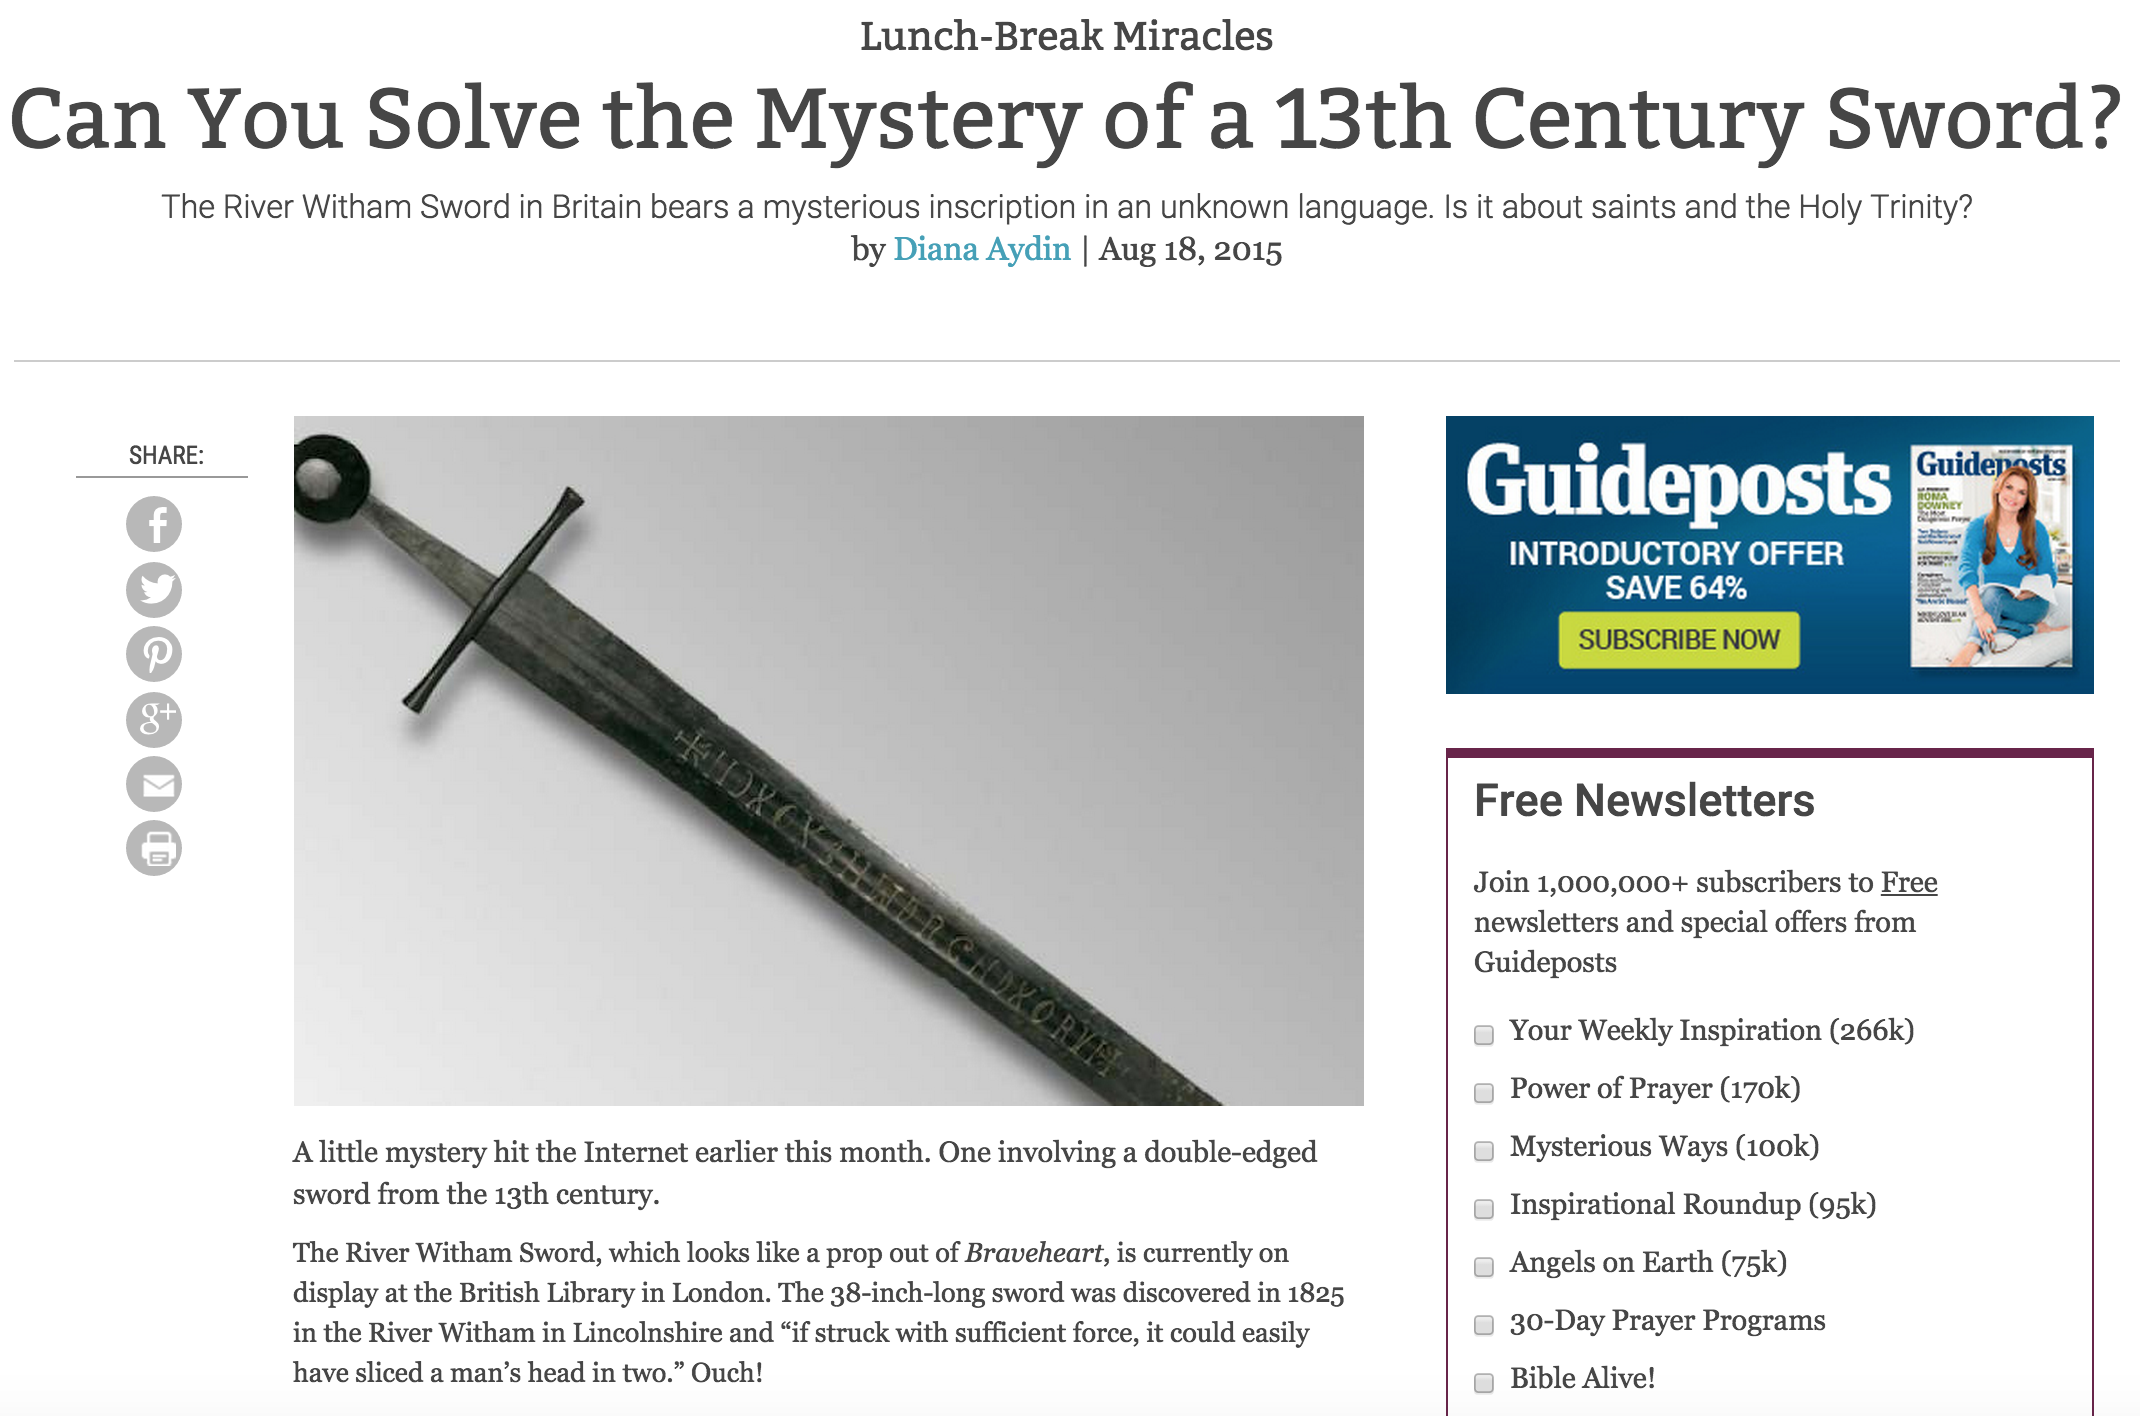 Can You Solve the Mystery of a 13th Century Sword?